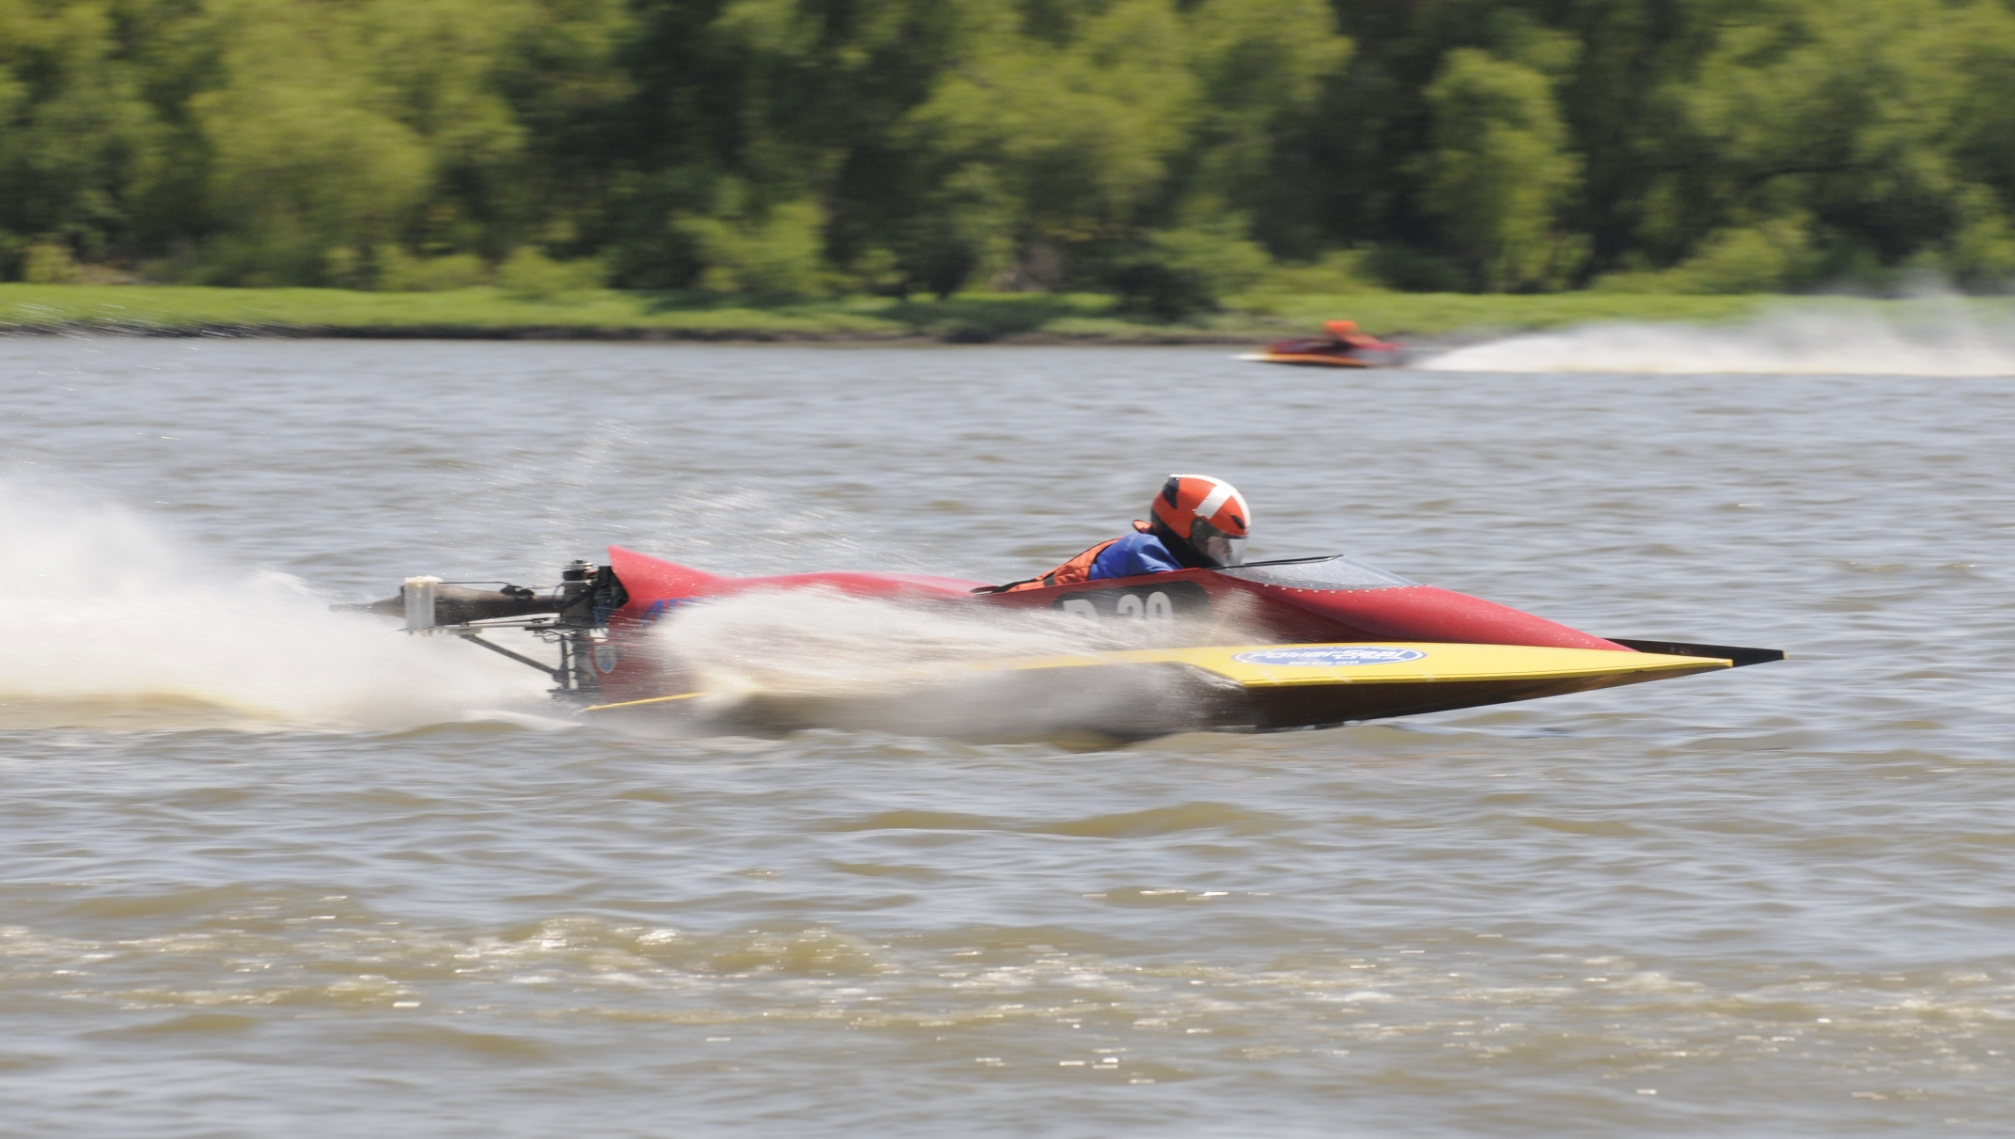 125cc Outboard Racing